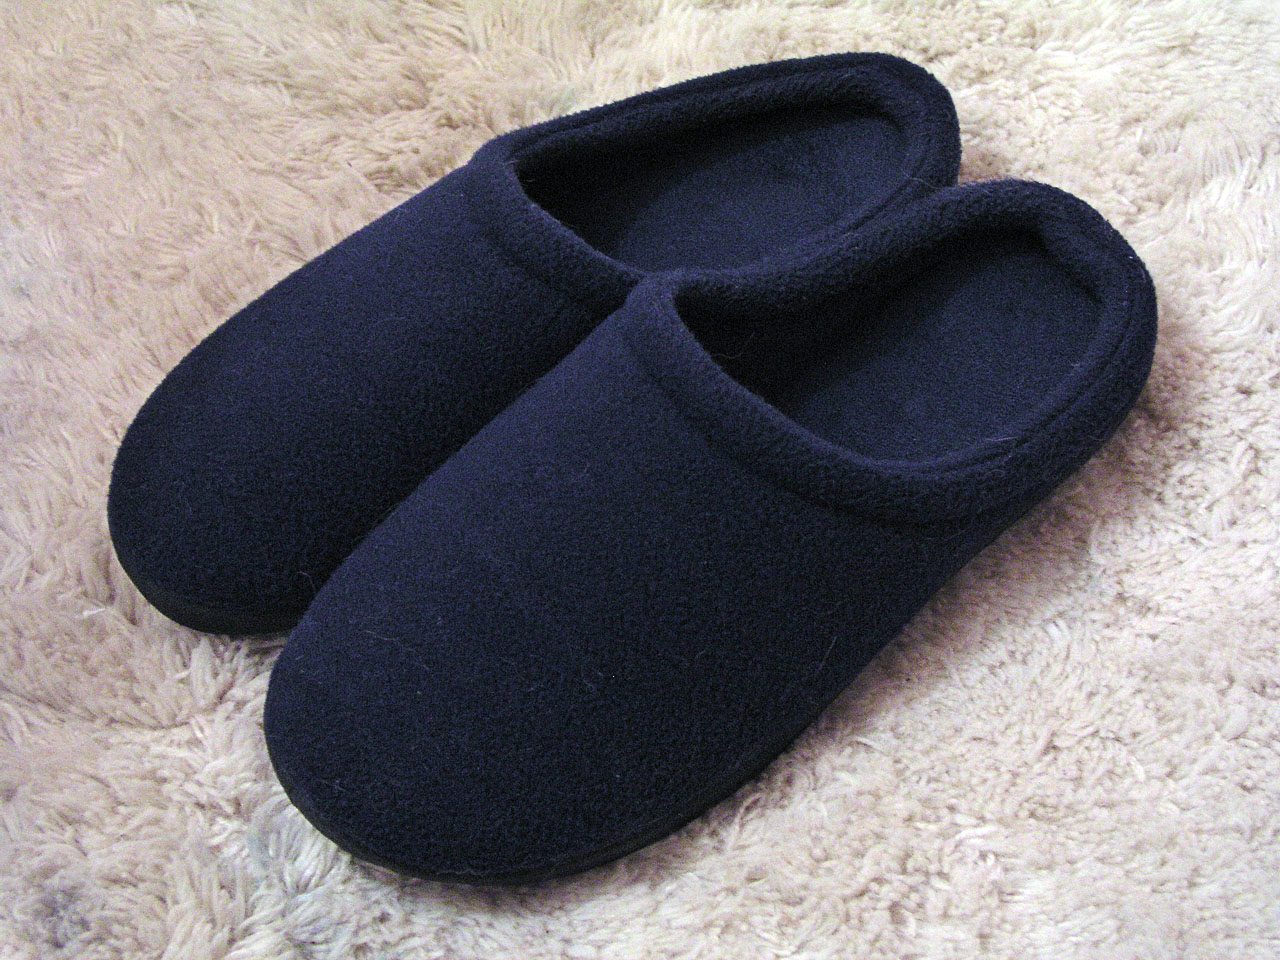 http://upload.wikimedia.org/wikipedia/commons/f/f2/Slippers.jpg